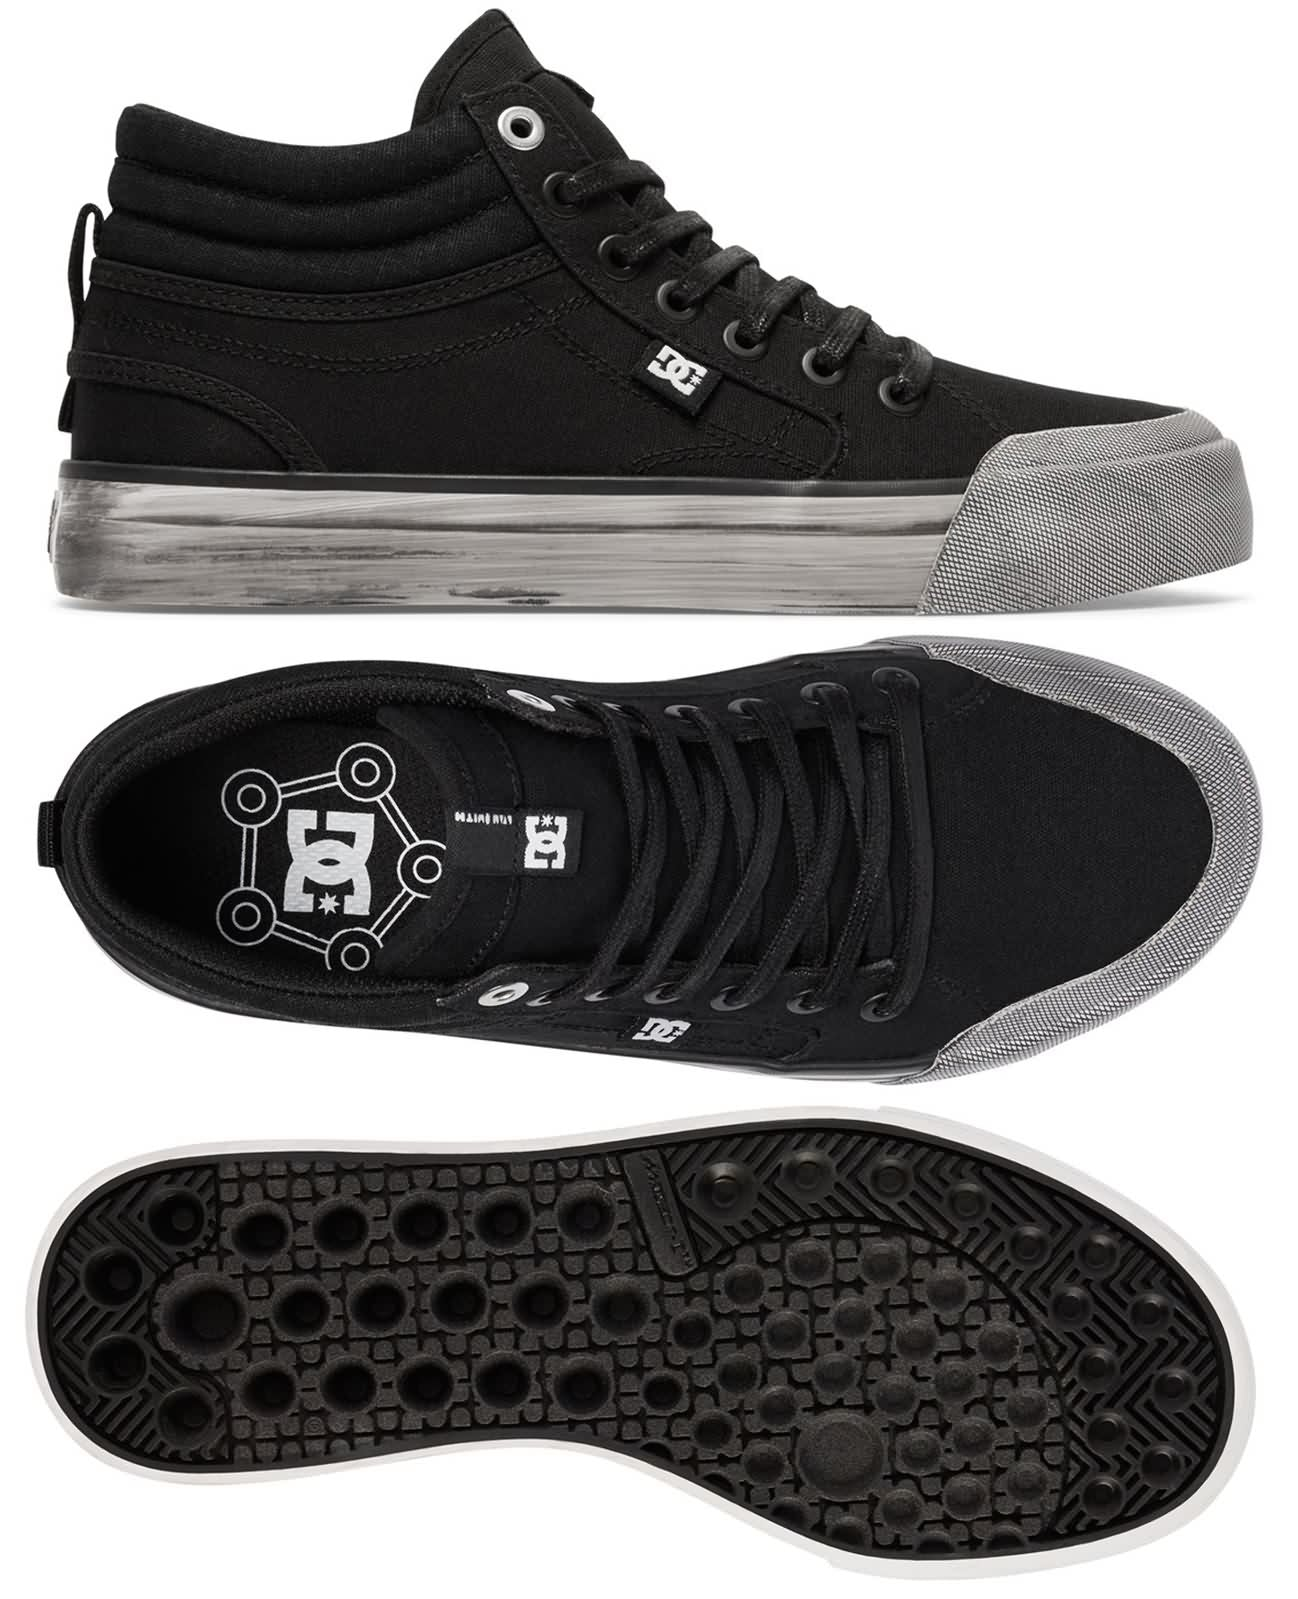 DC SHOES NEW BYO EMPIRE TX SKATE TRAINERS BLACK YELLOW MENS SNEAKERS SMART